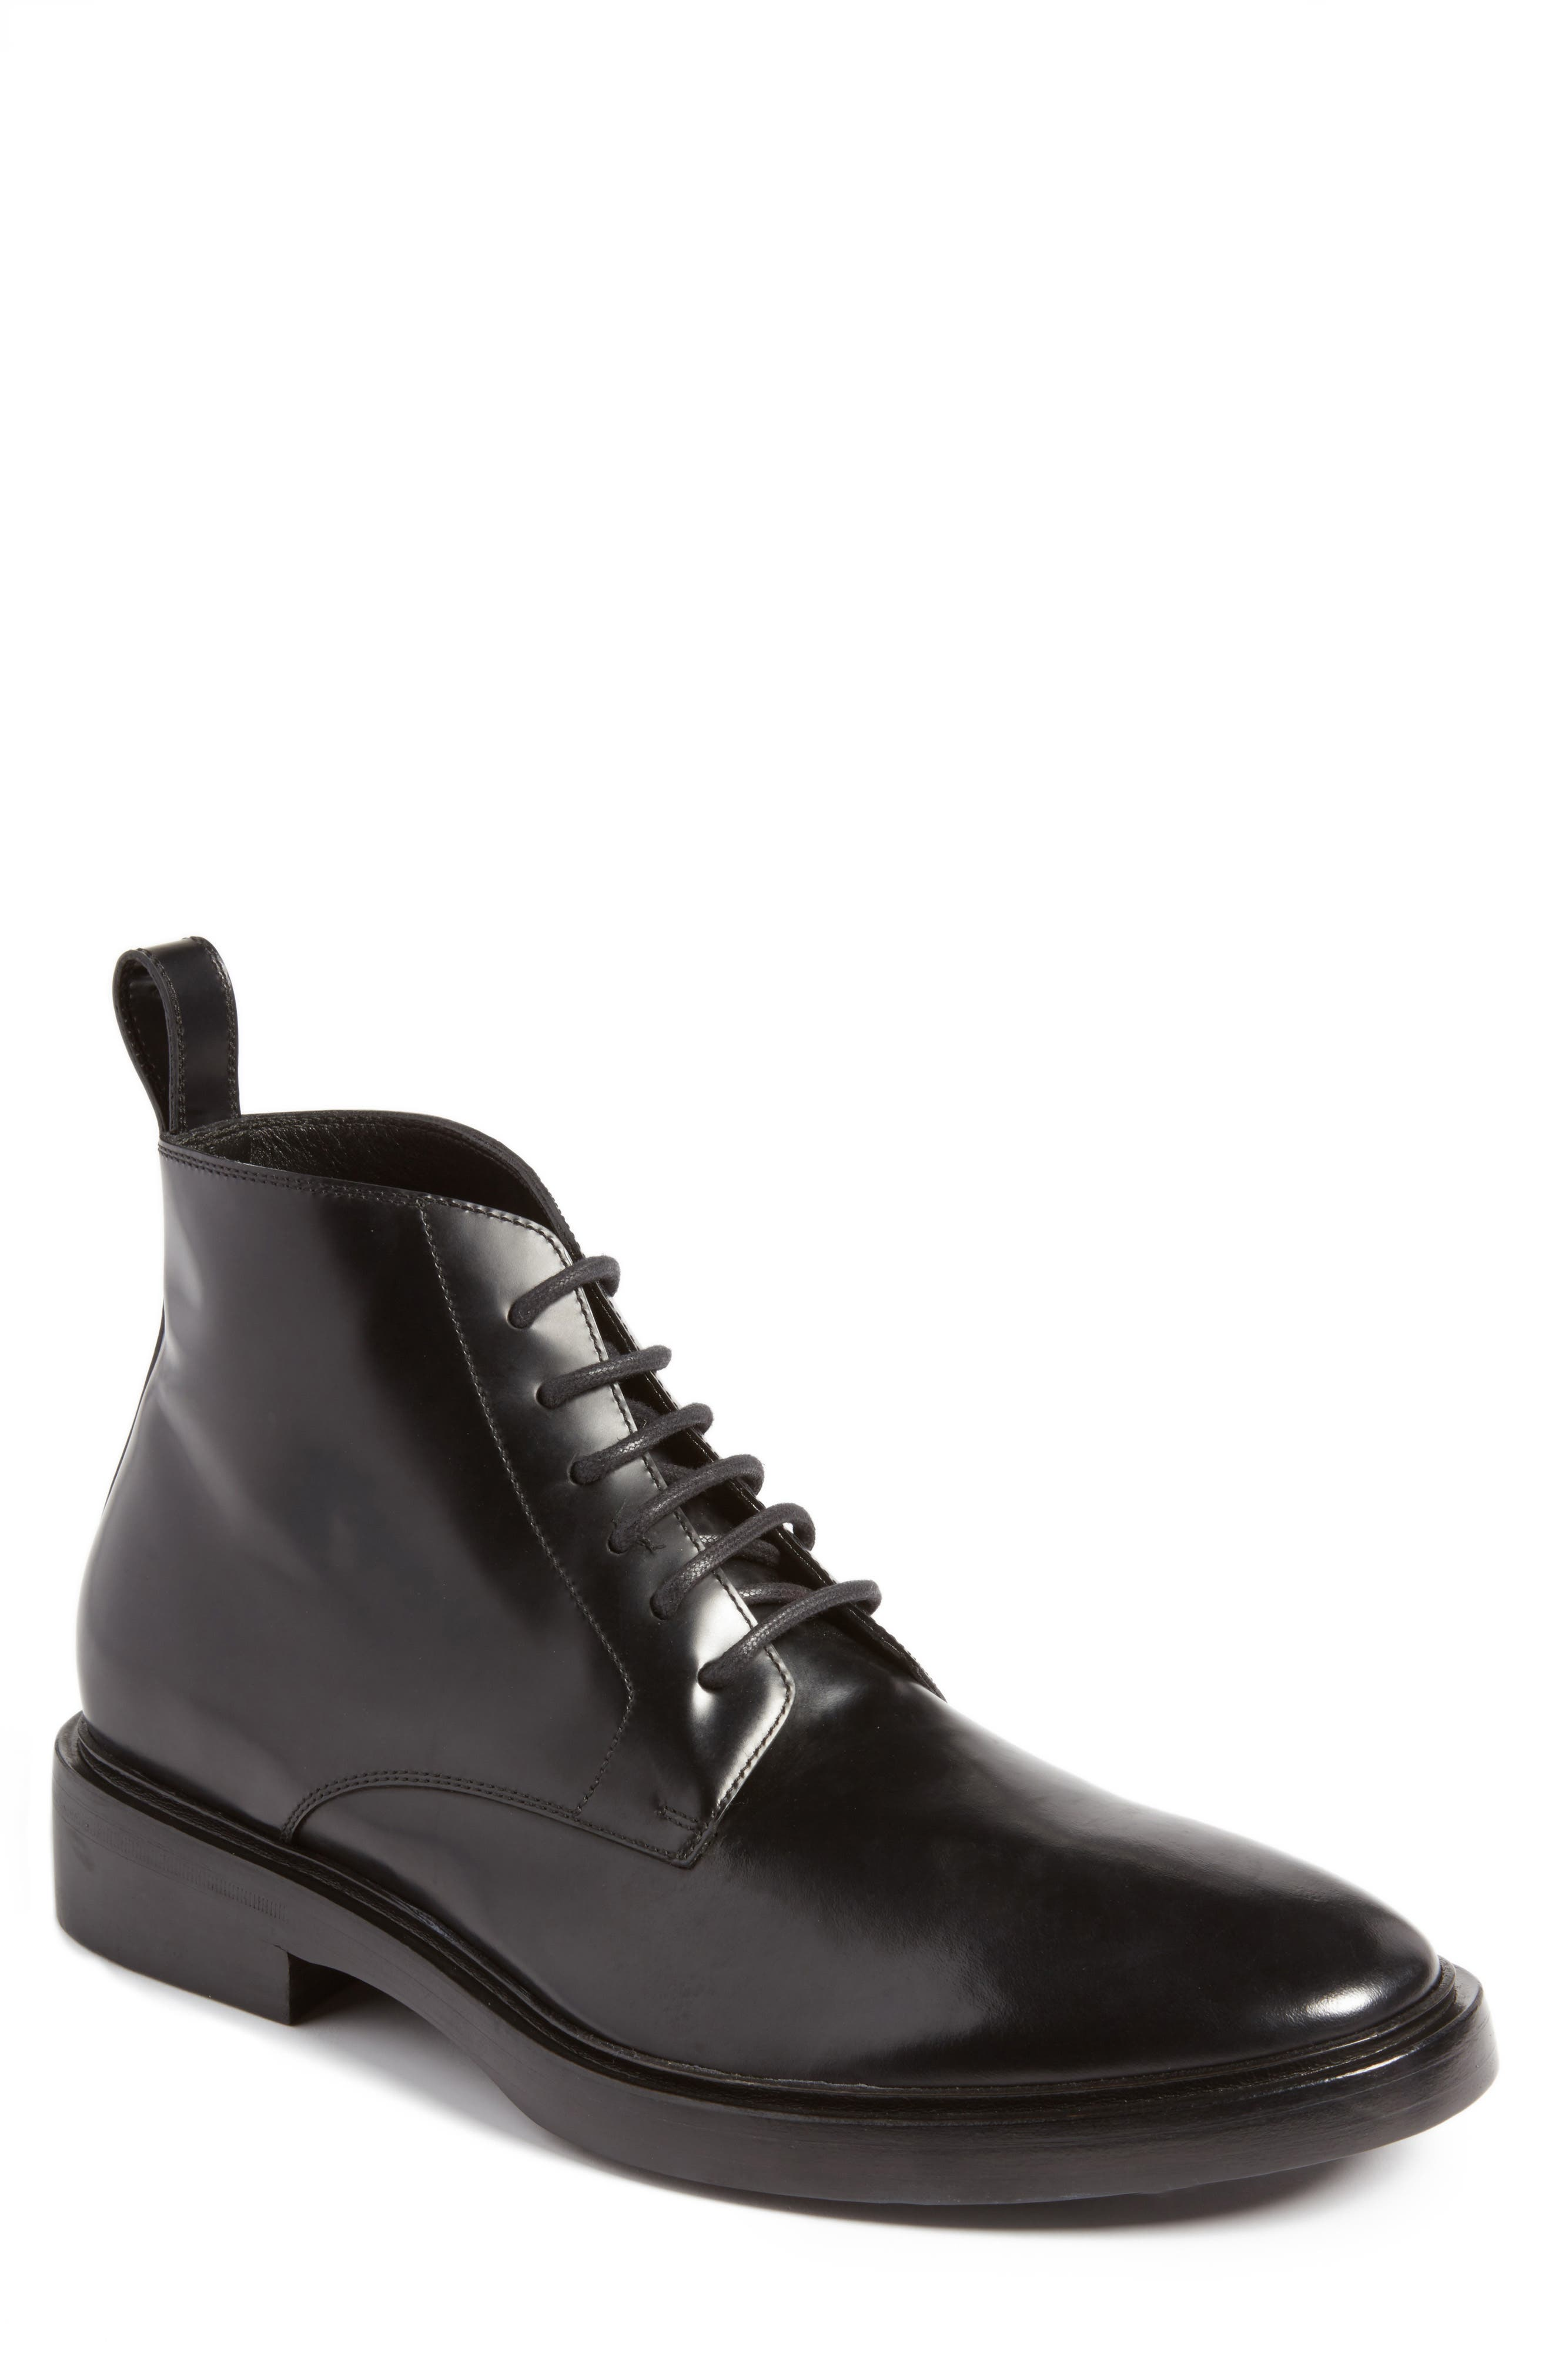 Balenciaga Plain Toe Boot (Men)